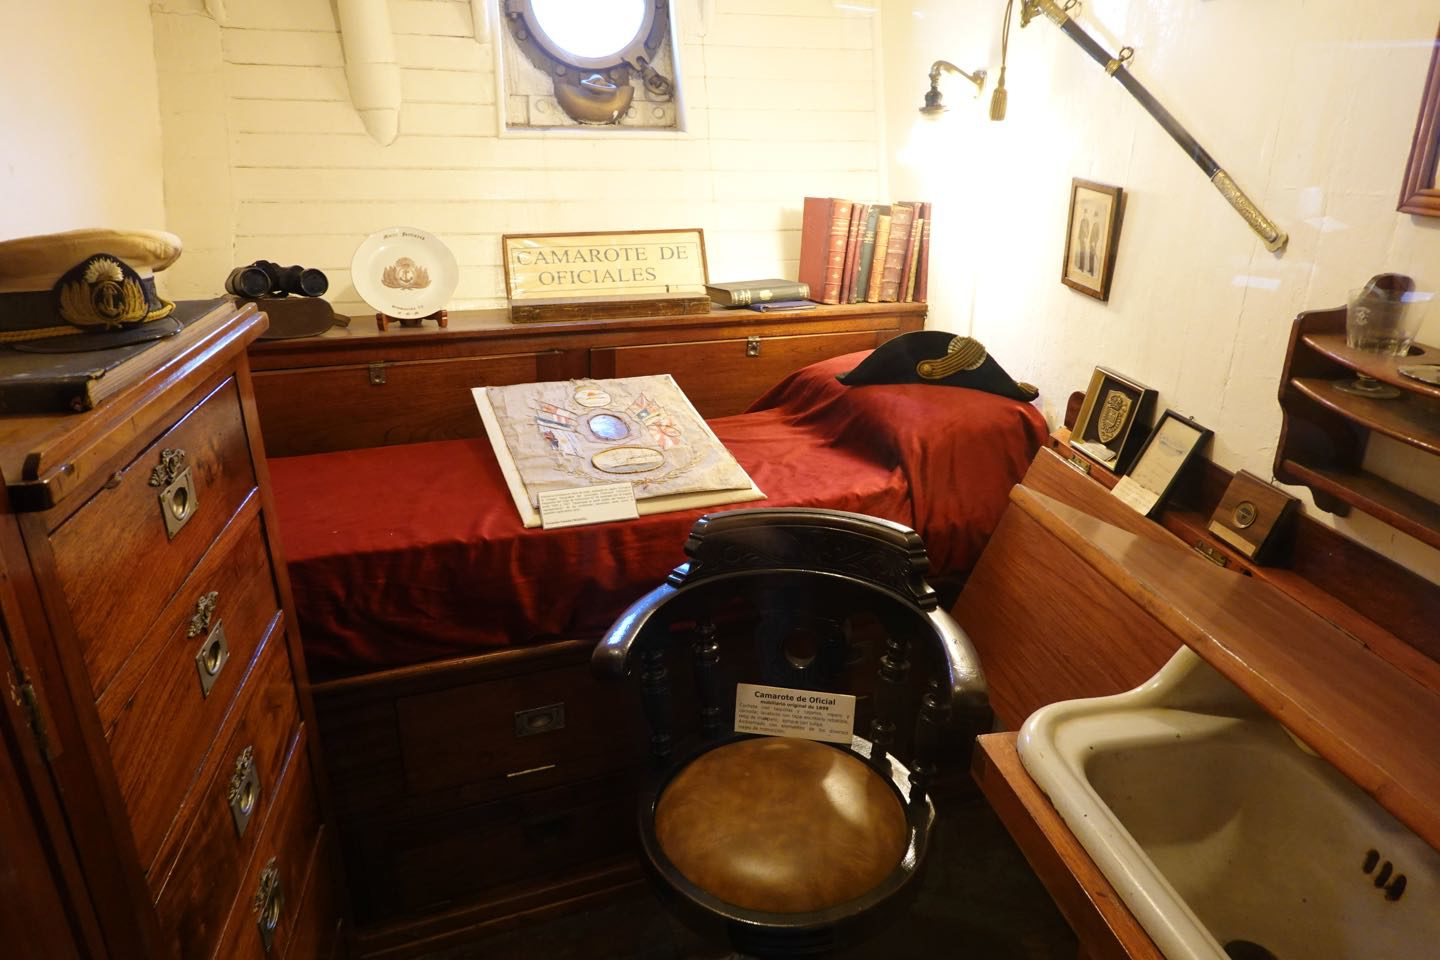 Stateroom of the Fragata Sarmiento ship museum.